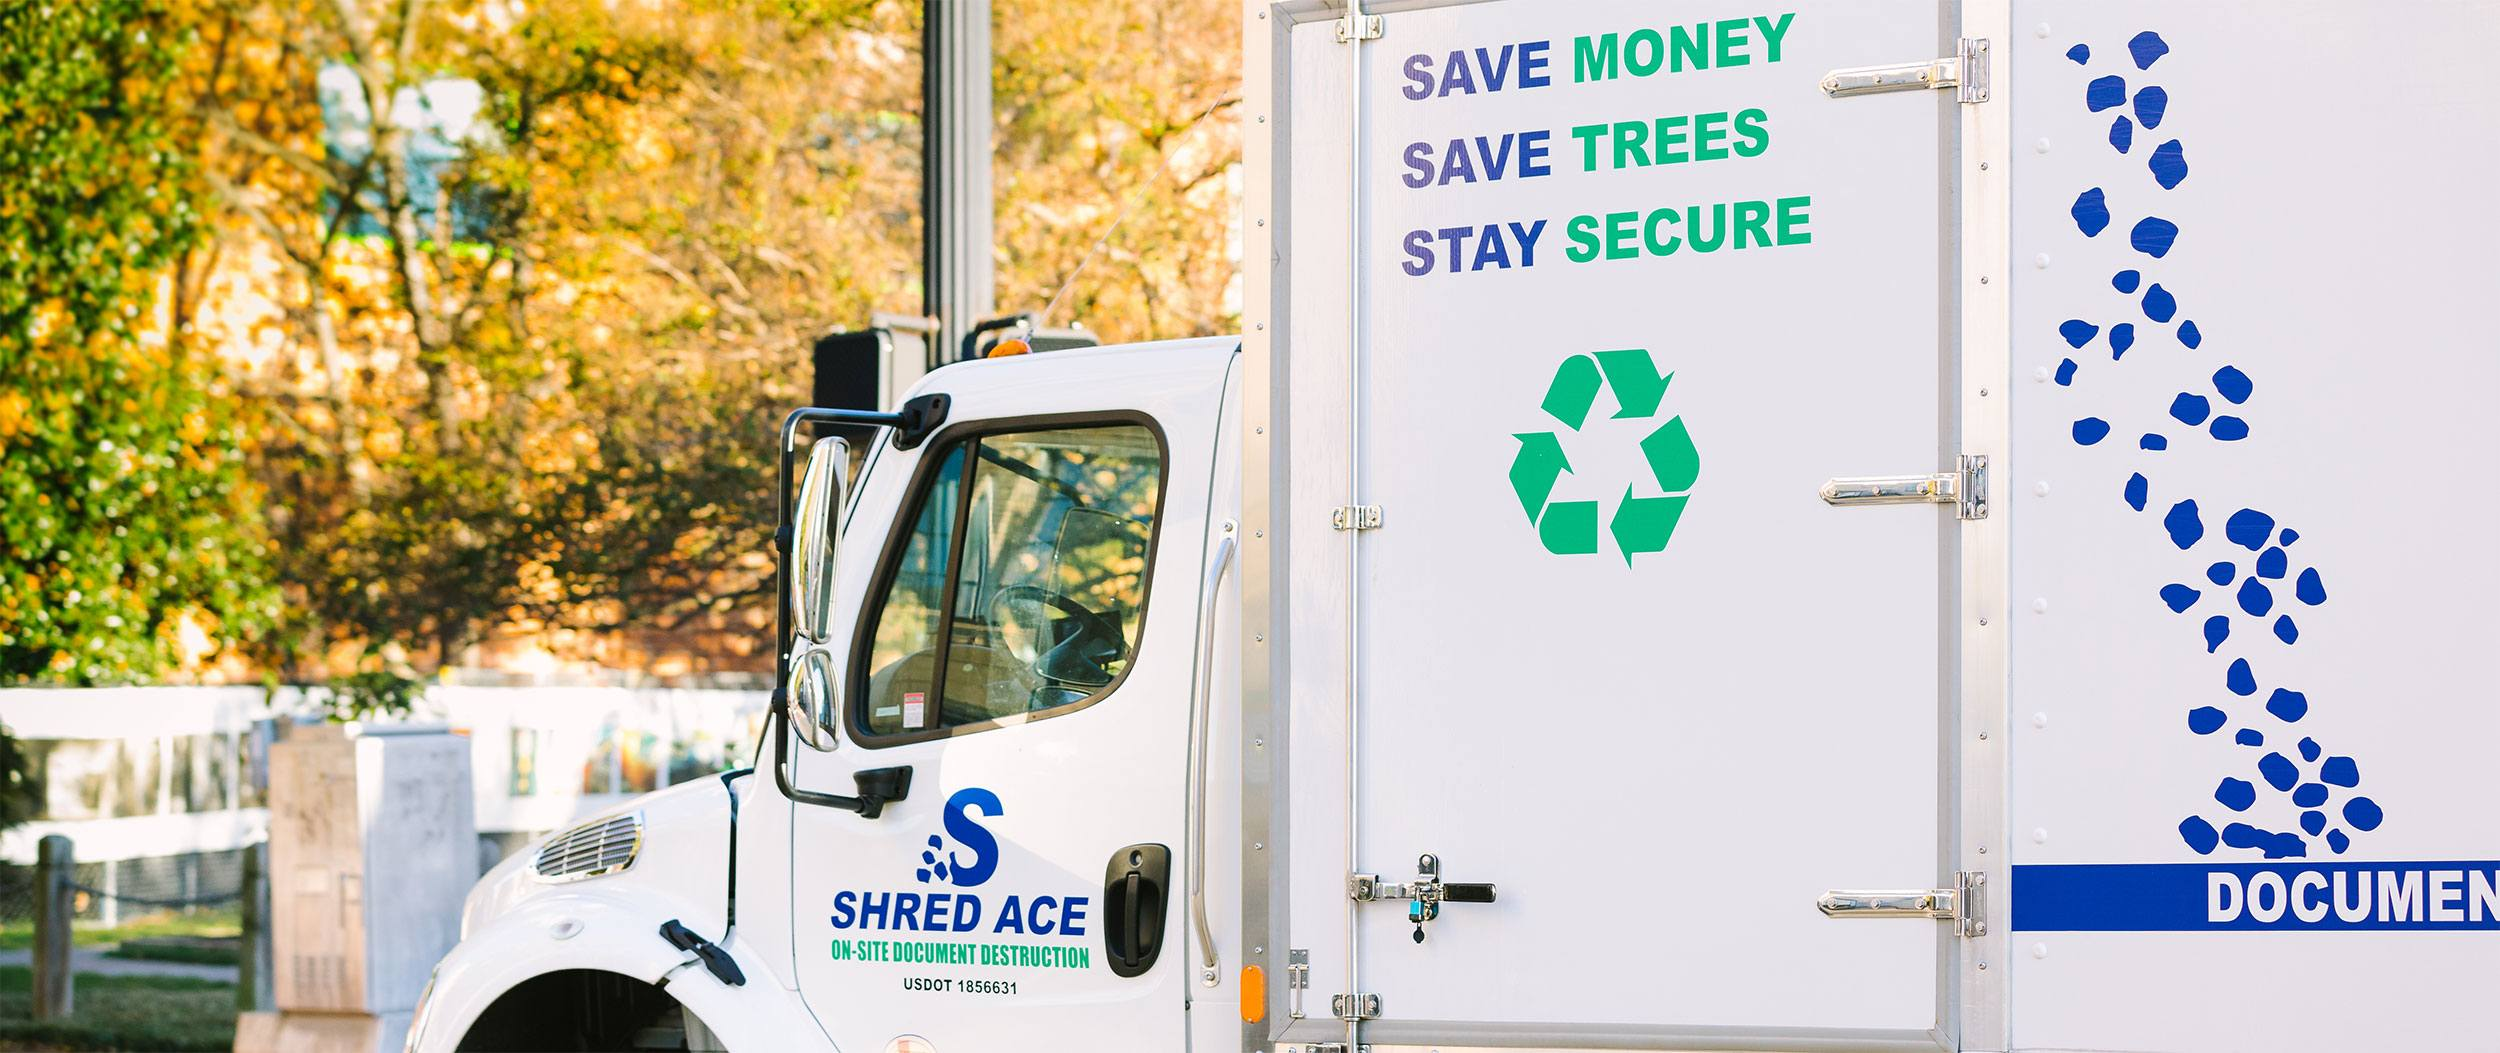 Shred ace shredding services in raleigh charlotte for Document shredding durham nc